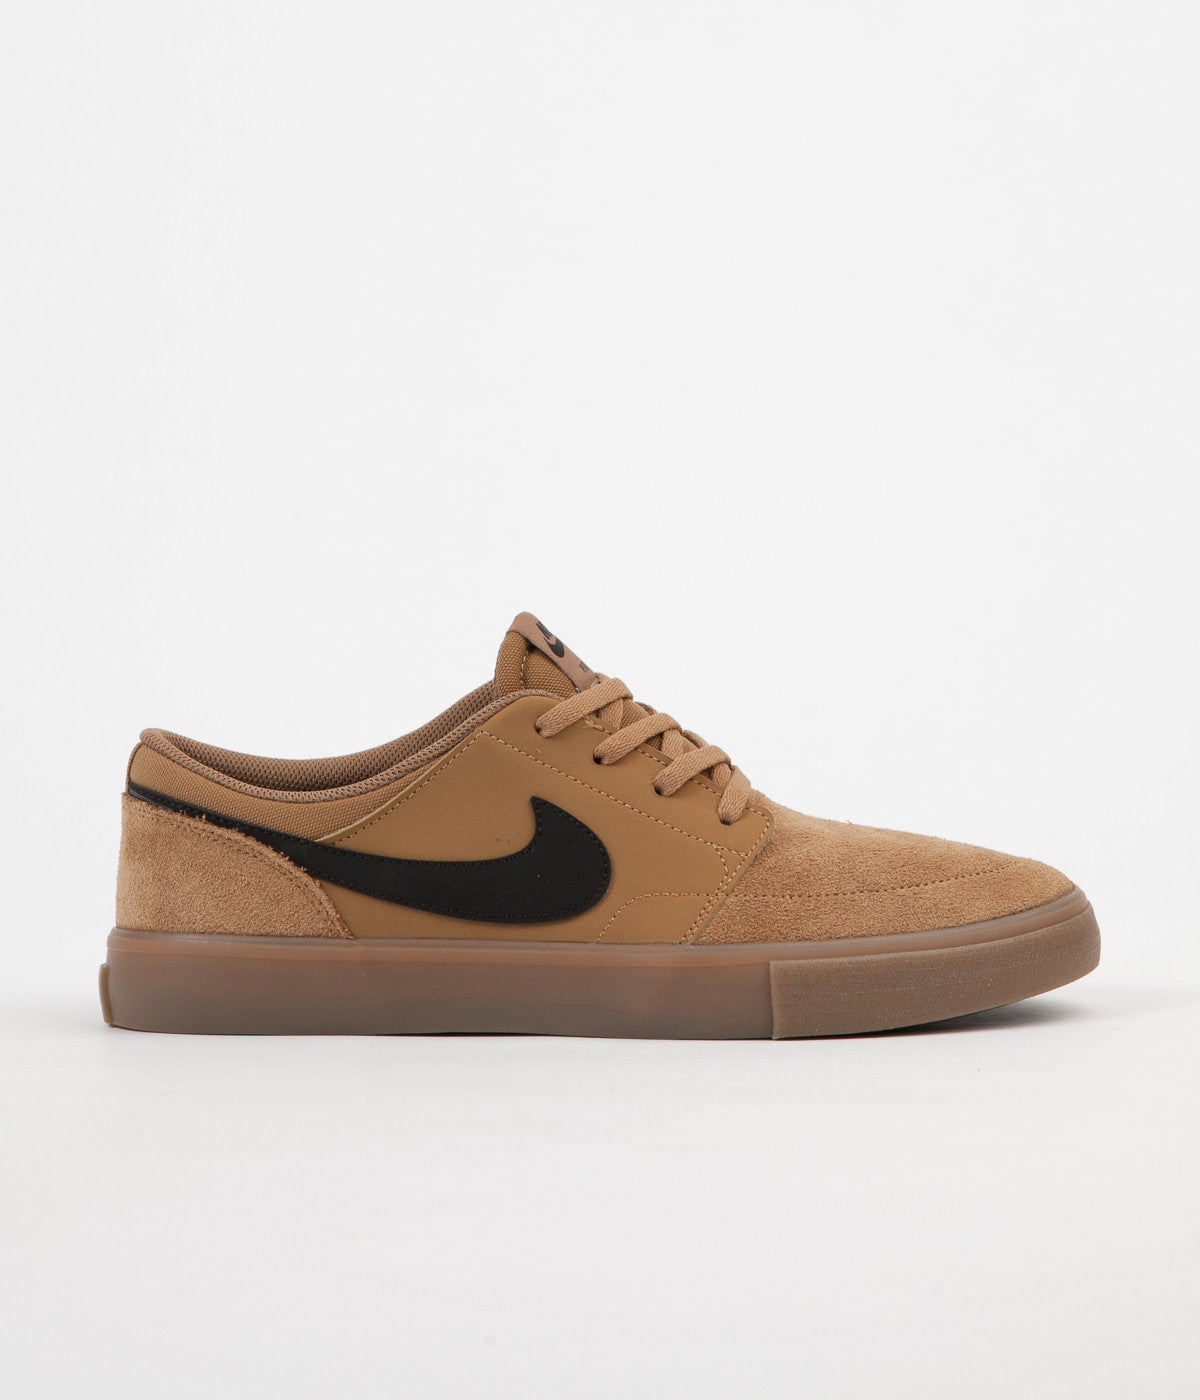 nike sb solarsoft portmore ii shoes golden beige black gum light flatspot. Black Bedroom Furniture Sets. Home Design Ideas